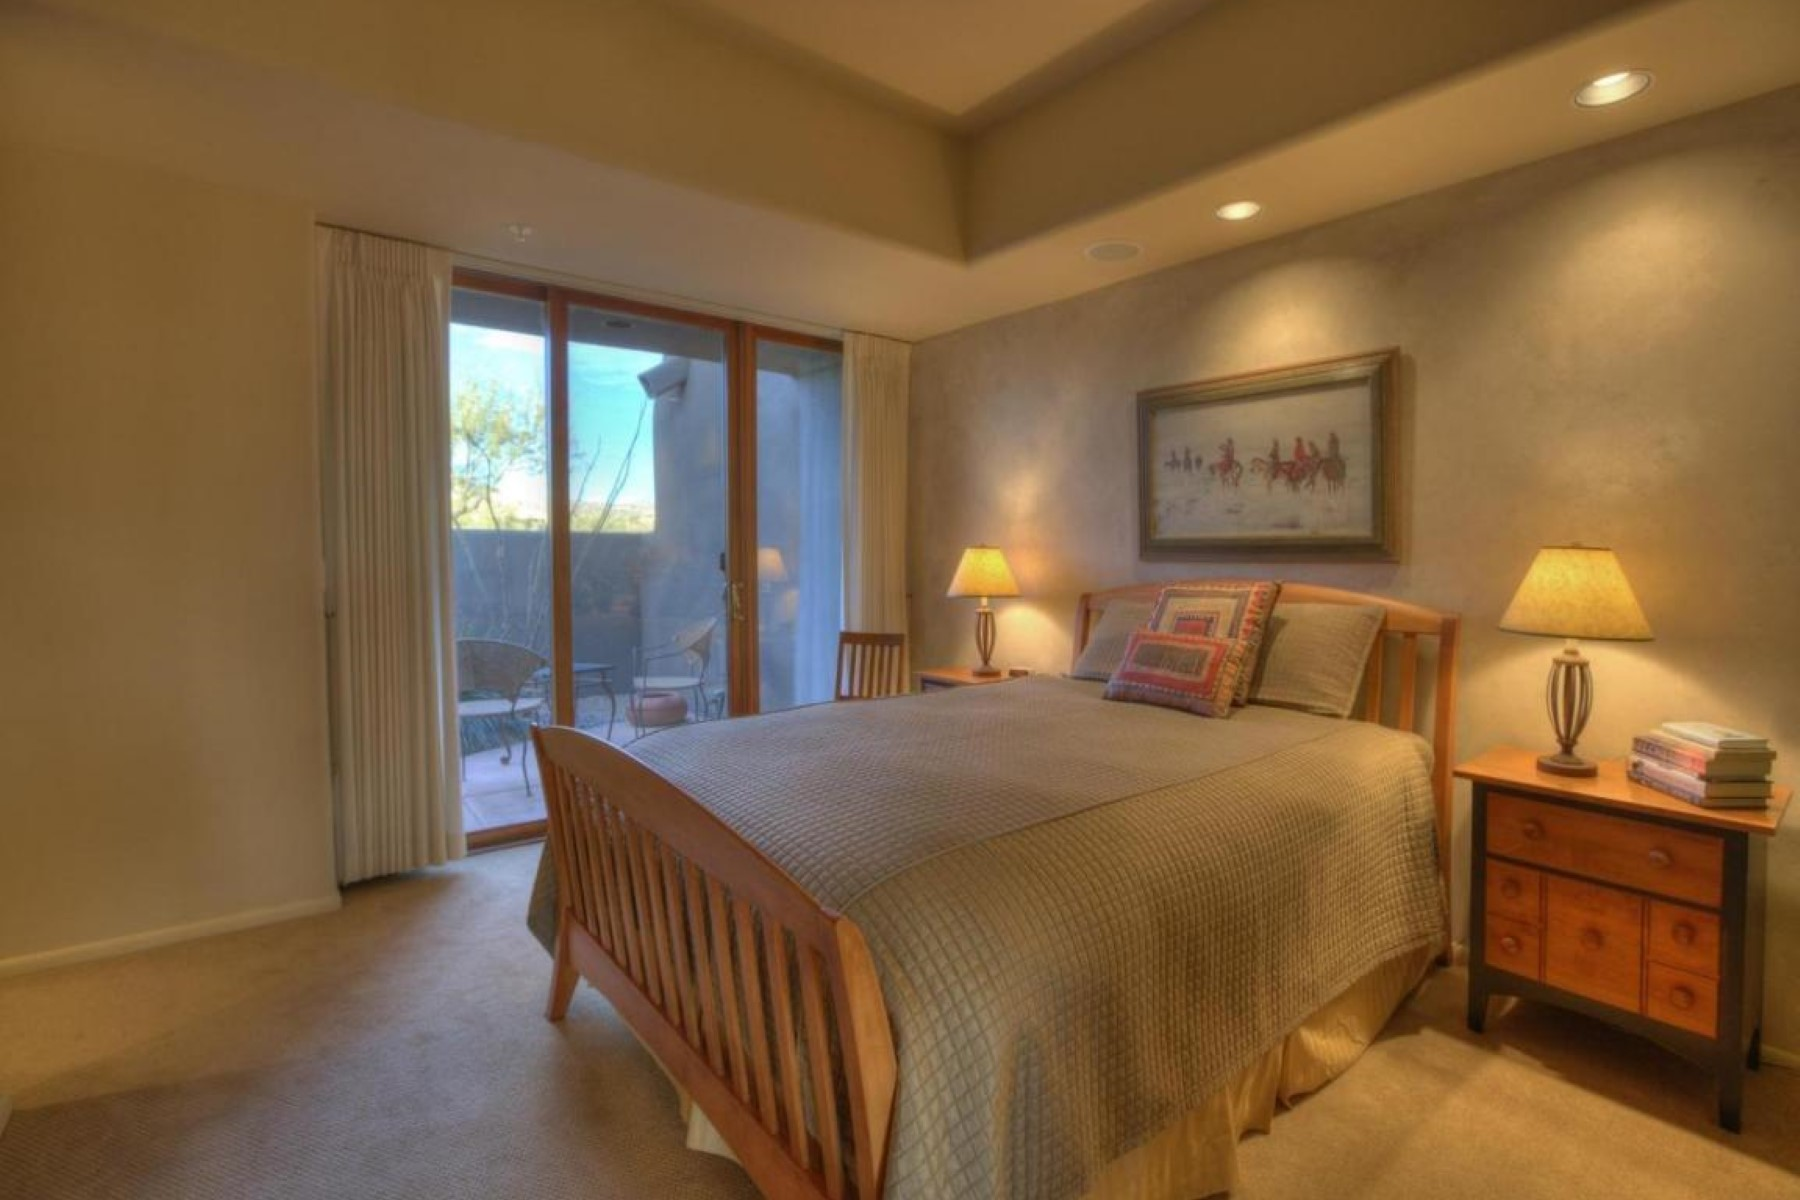 Property Of Fabulous two bedroom 2.5 bath home in Sonoran Cottage Enclave